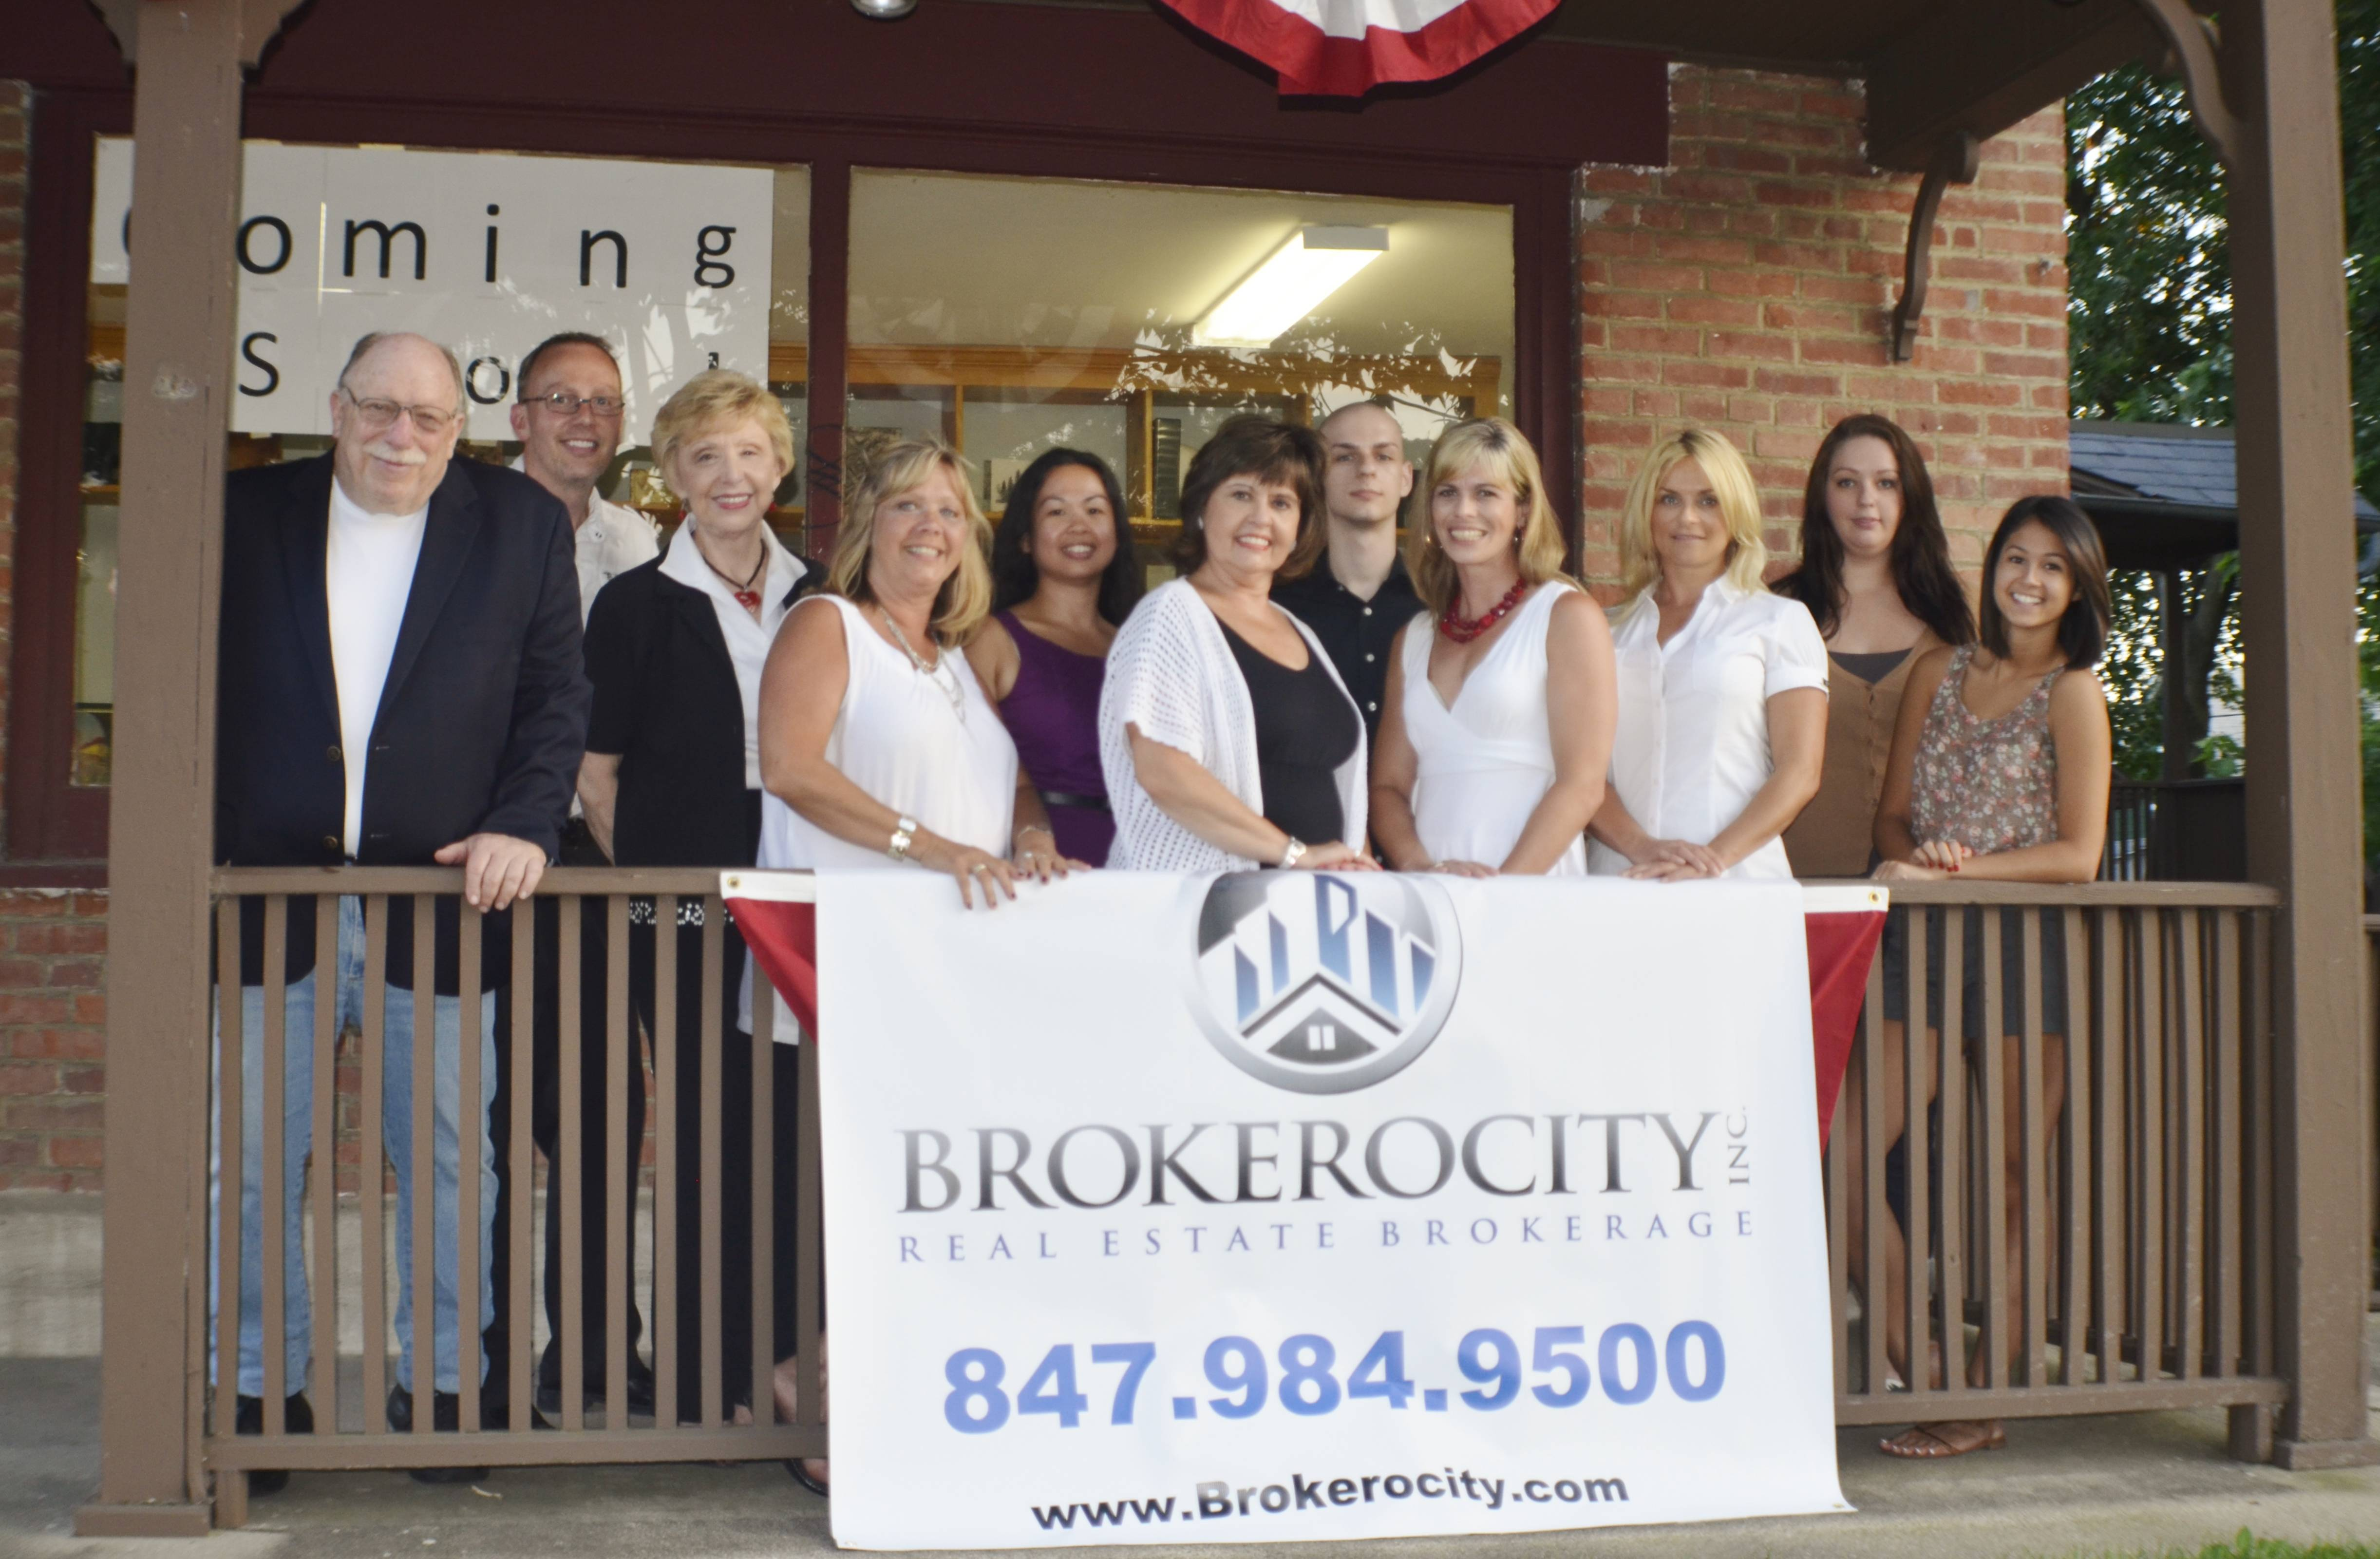 (Photograph identification: from left to right: Michael Schneider, Frank Richier, Broker-Owner, Donna Griffin, Bobbie St. John, Wendy  Litorja, Jean Steffens, Kyle Richier, Lisa Savage, Monica Wickham, Ashley Richier and  Alexis Rubenstein. Missing from photo is James Sances).